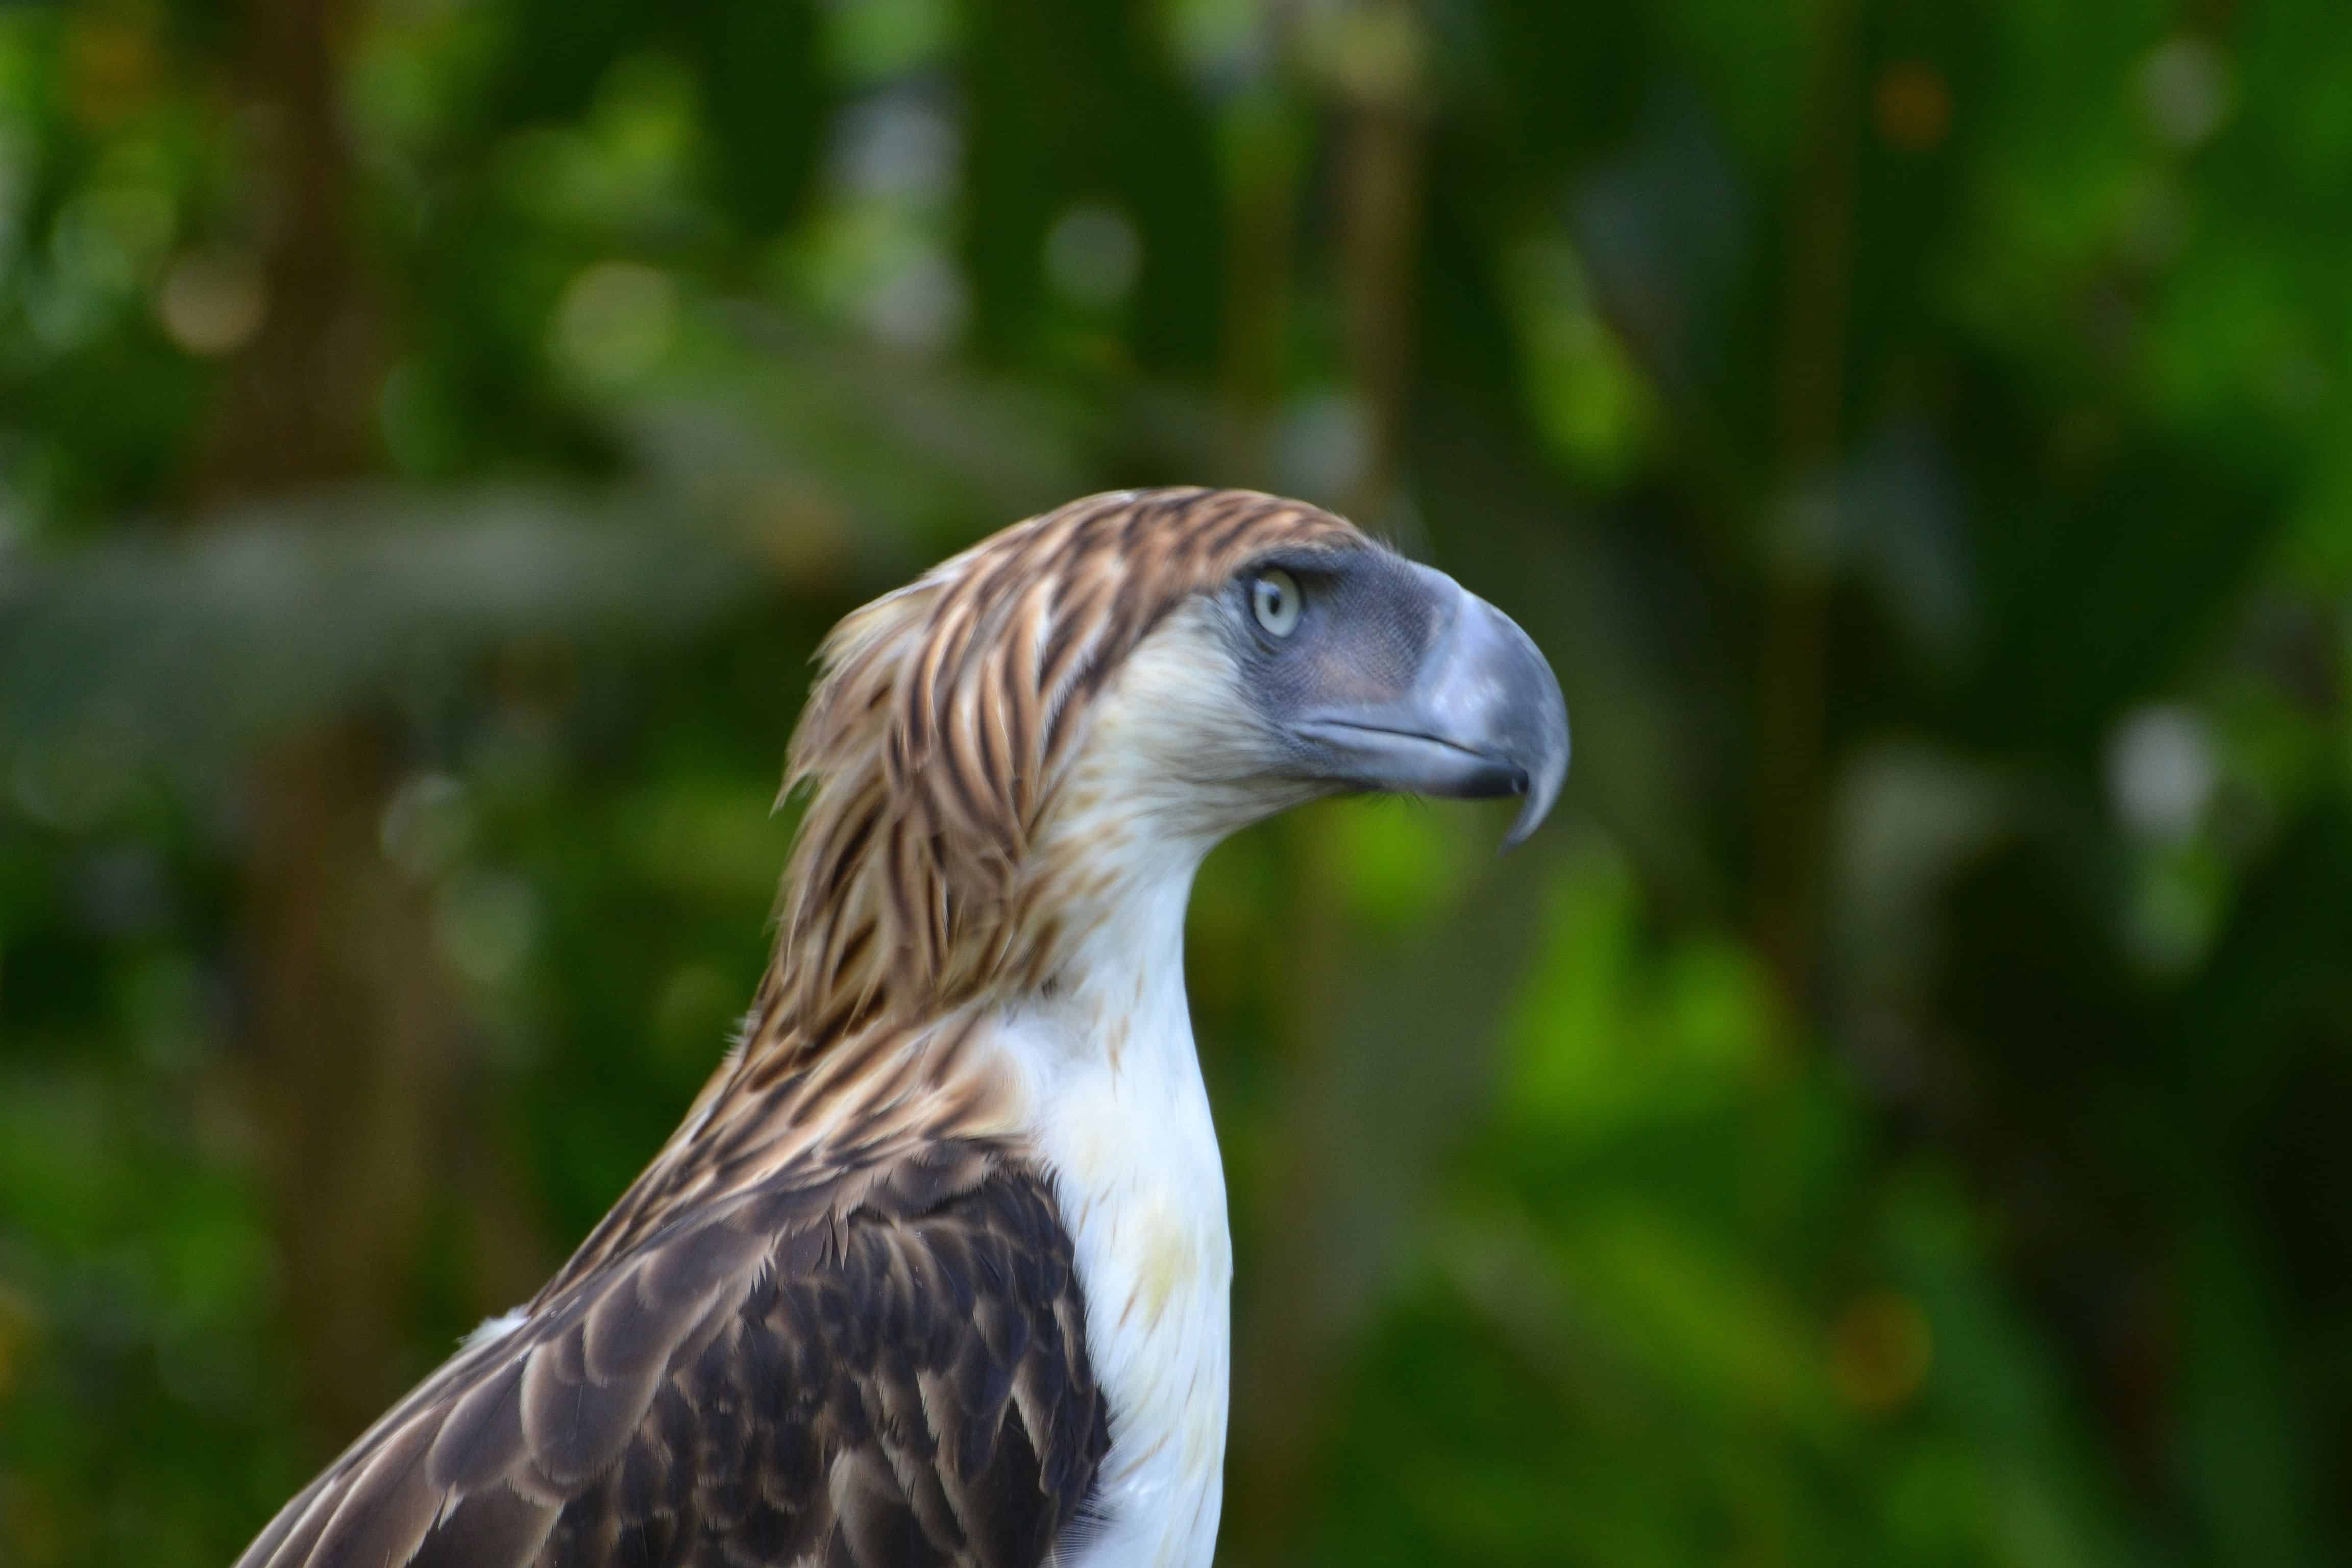 Where is Philippine Eagle found?